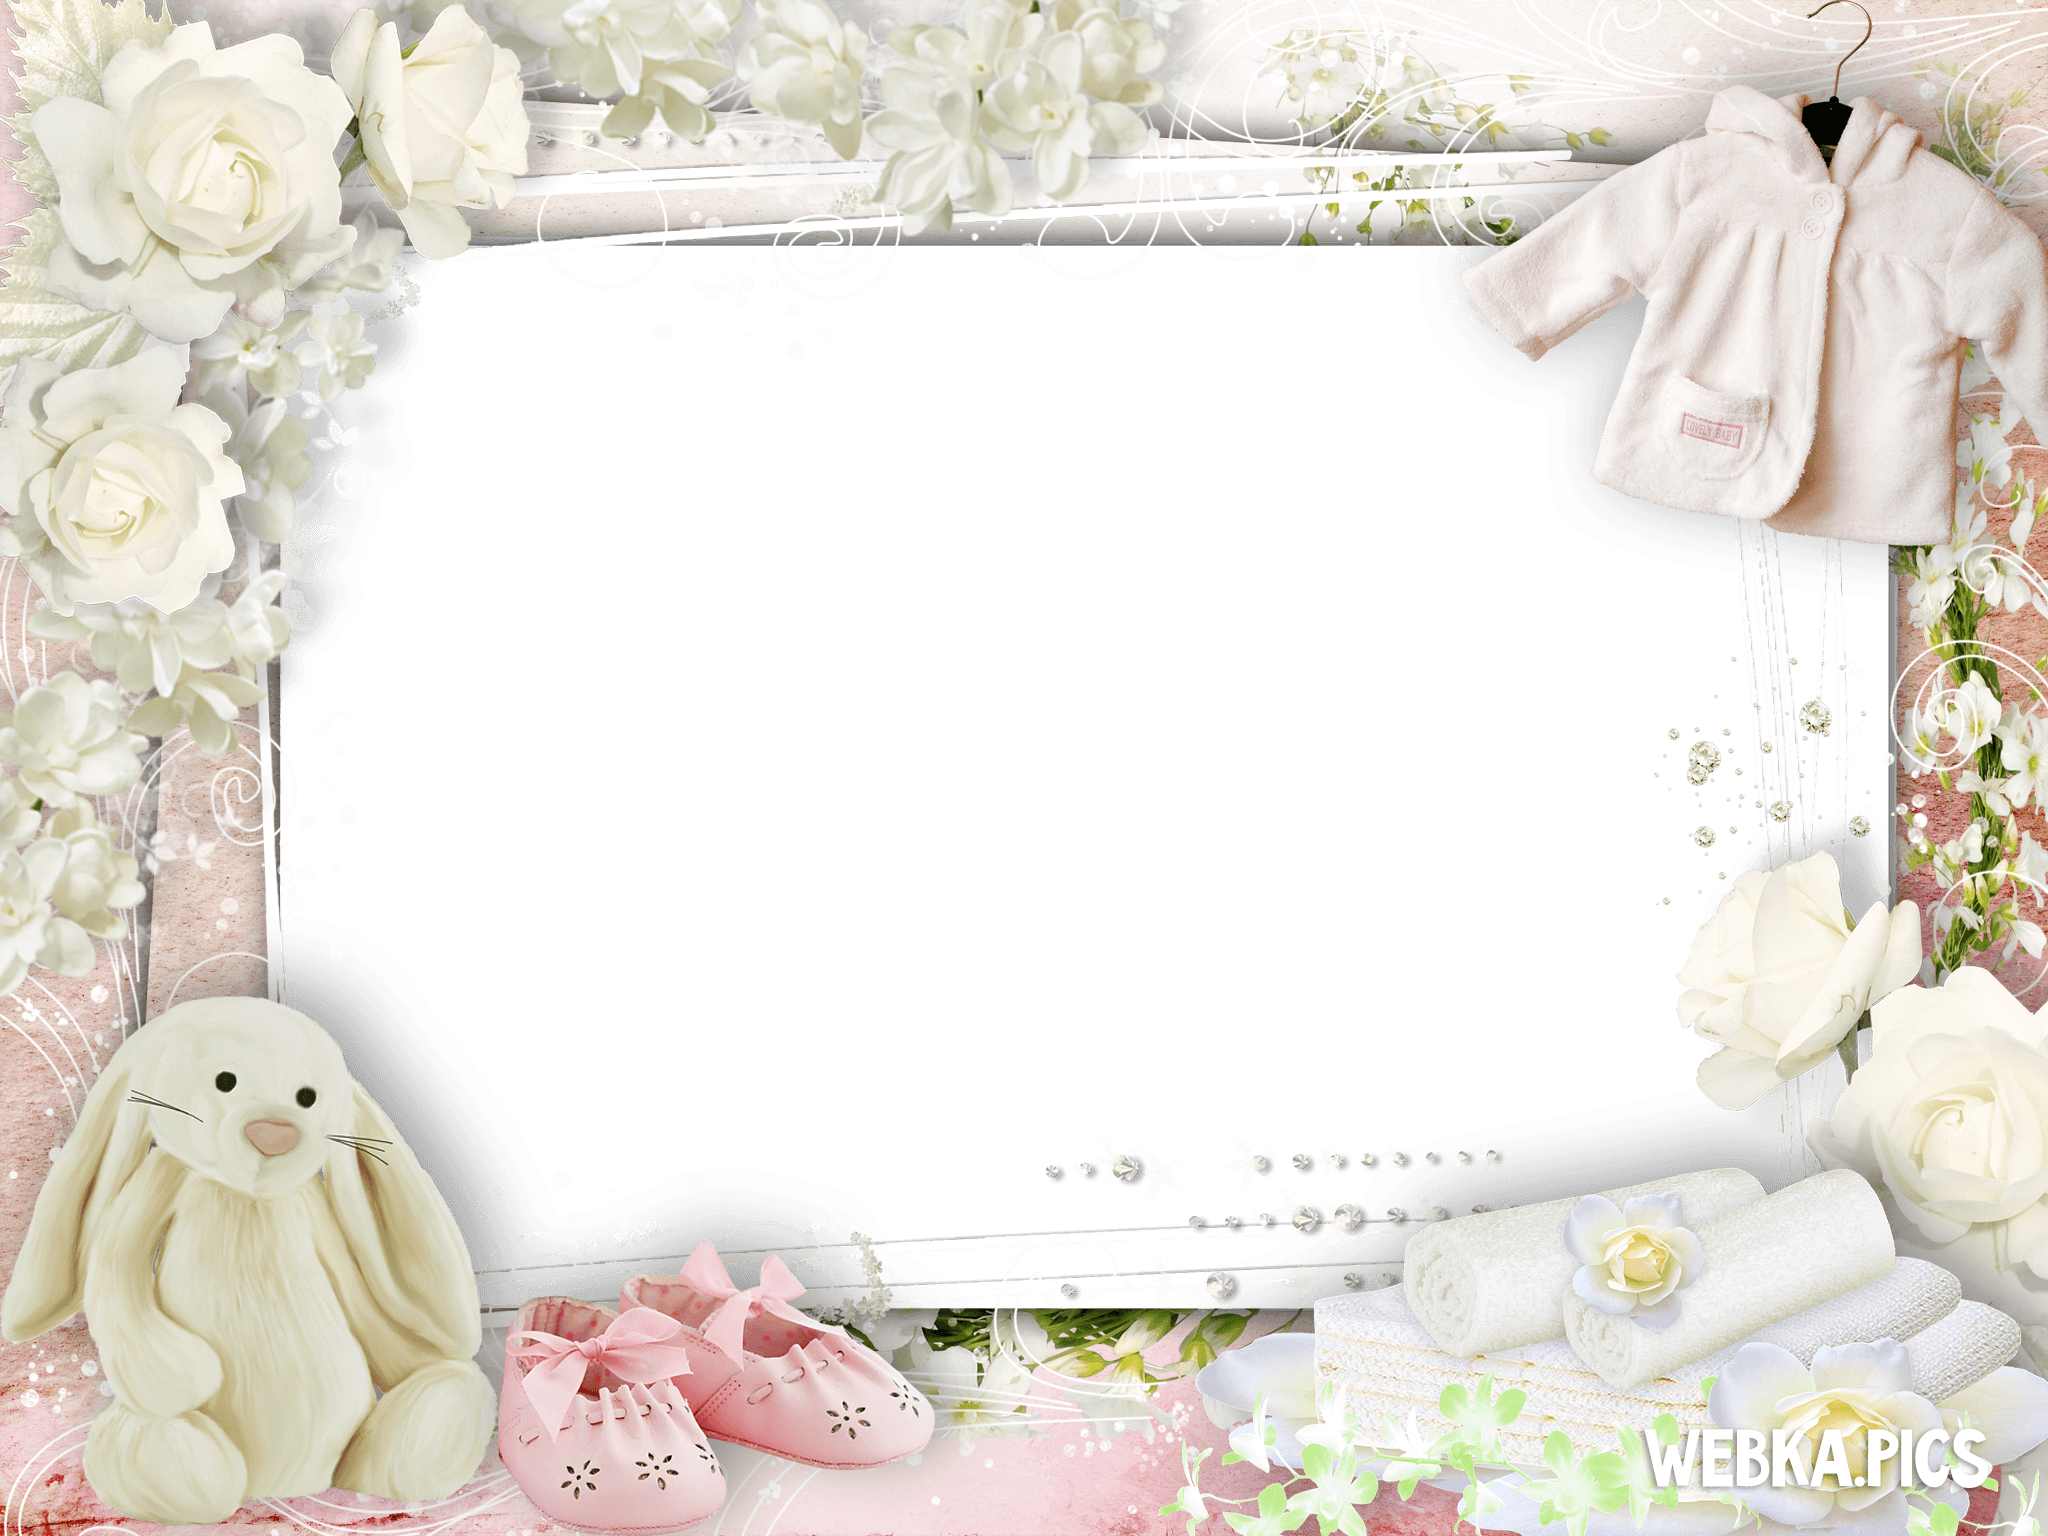 Webka photo frames online app for free baby photo frame picture jeuxipadfo Images